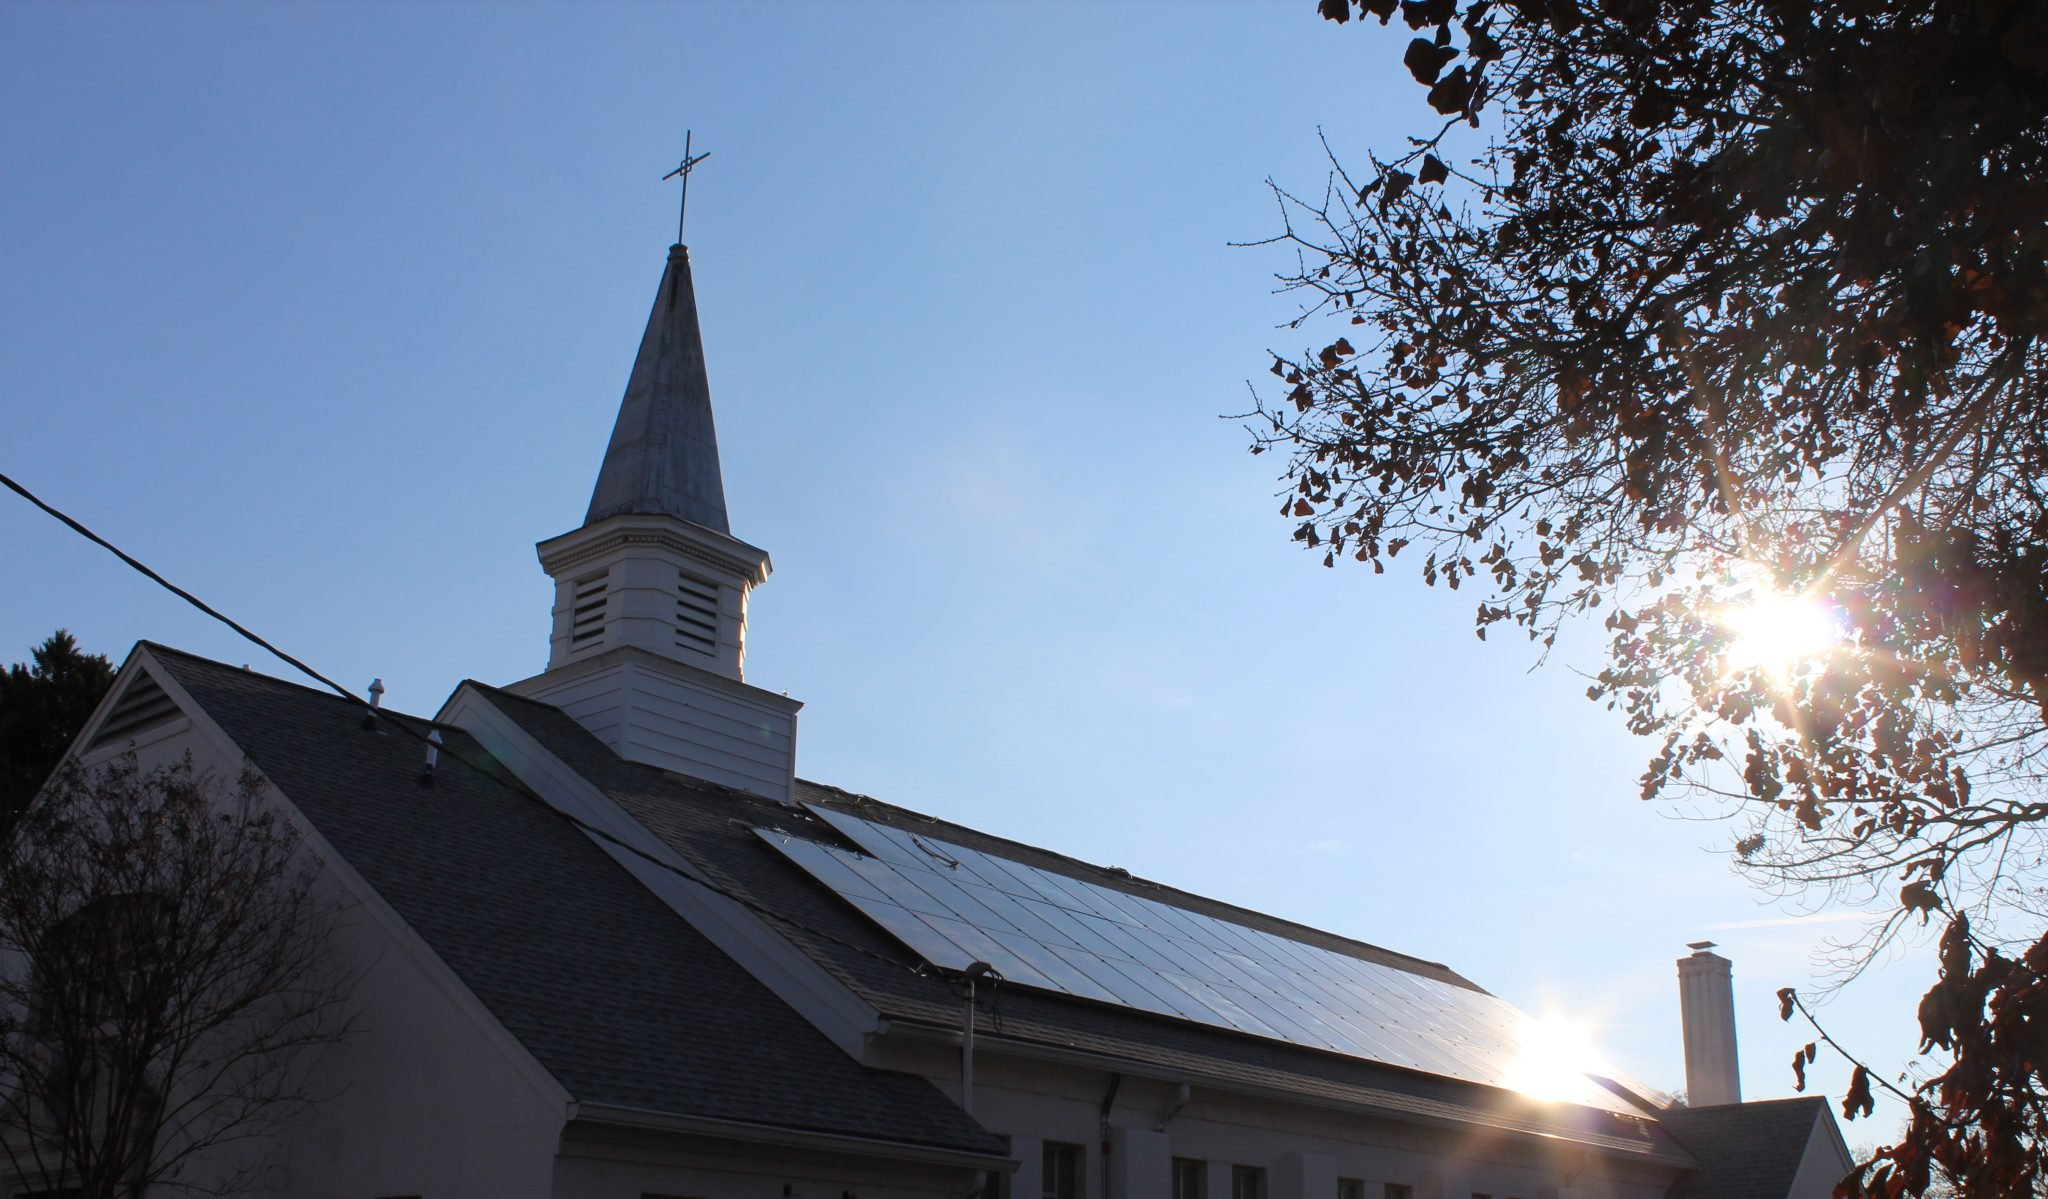 Solar Power Project in Progress at Our Lady Queen of Peace